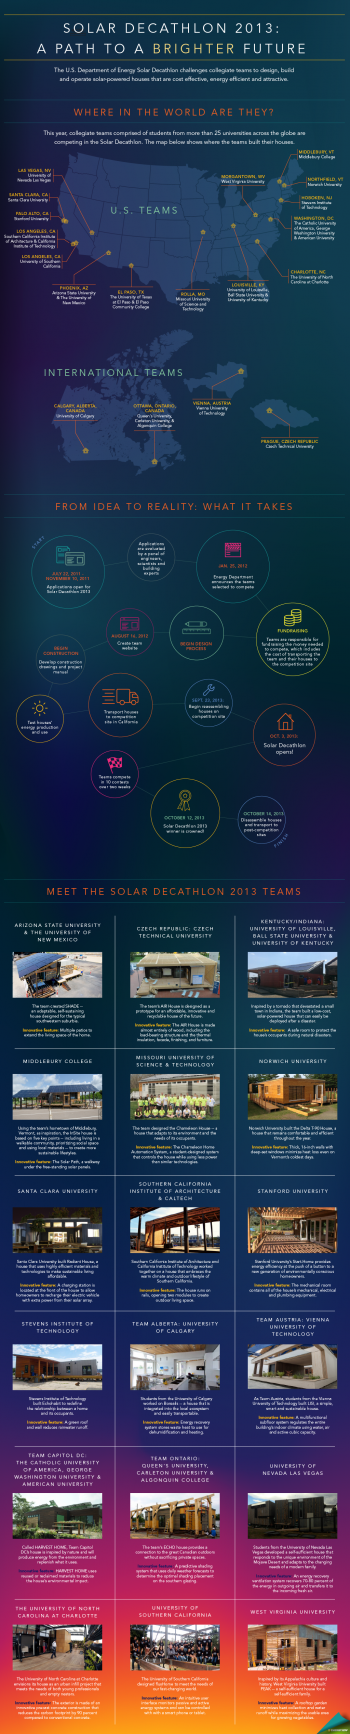 "Our latest infographic -- Solar Decathlon 2013: The Path to a Brighter Future -- takes a look at the teams competing in this year's competition and highlights innovative design features in each of the teams' houses. Not featured in the ""Meet the Teams"" section, Team Texas will also compete at Solar Decathlon 2013 with their ADAPT house. 